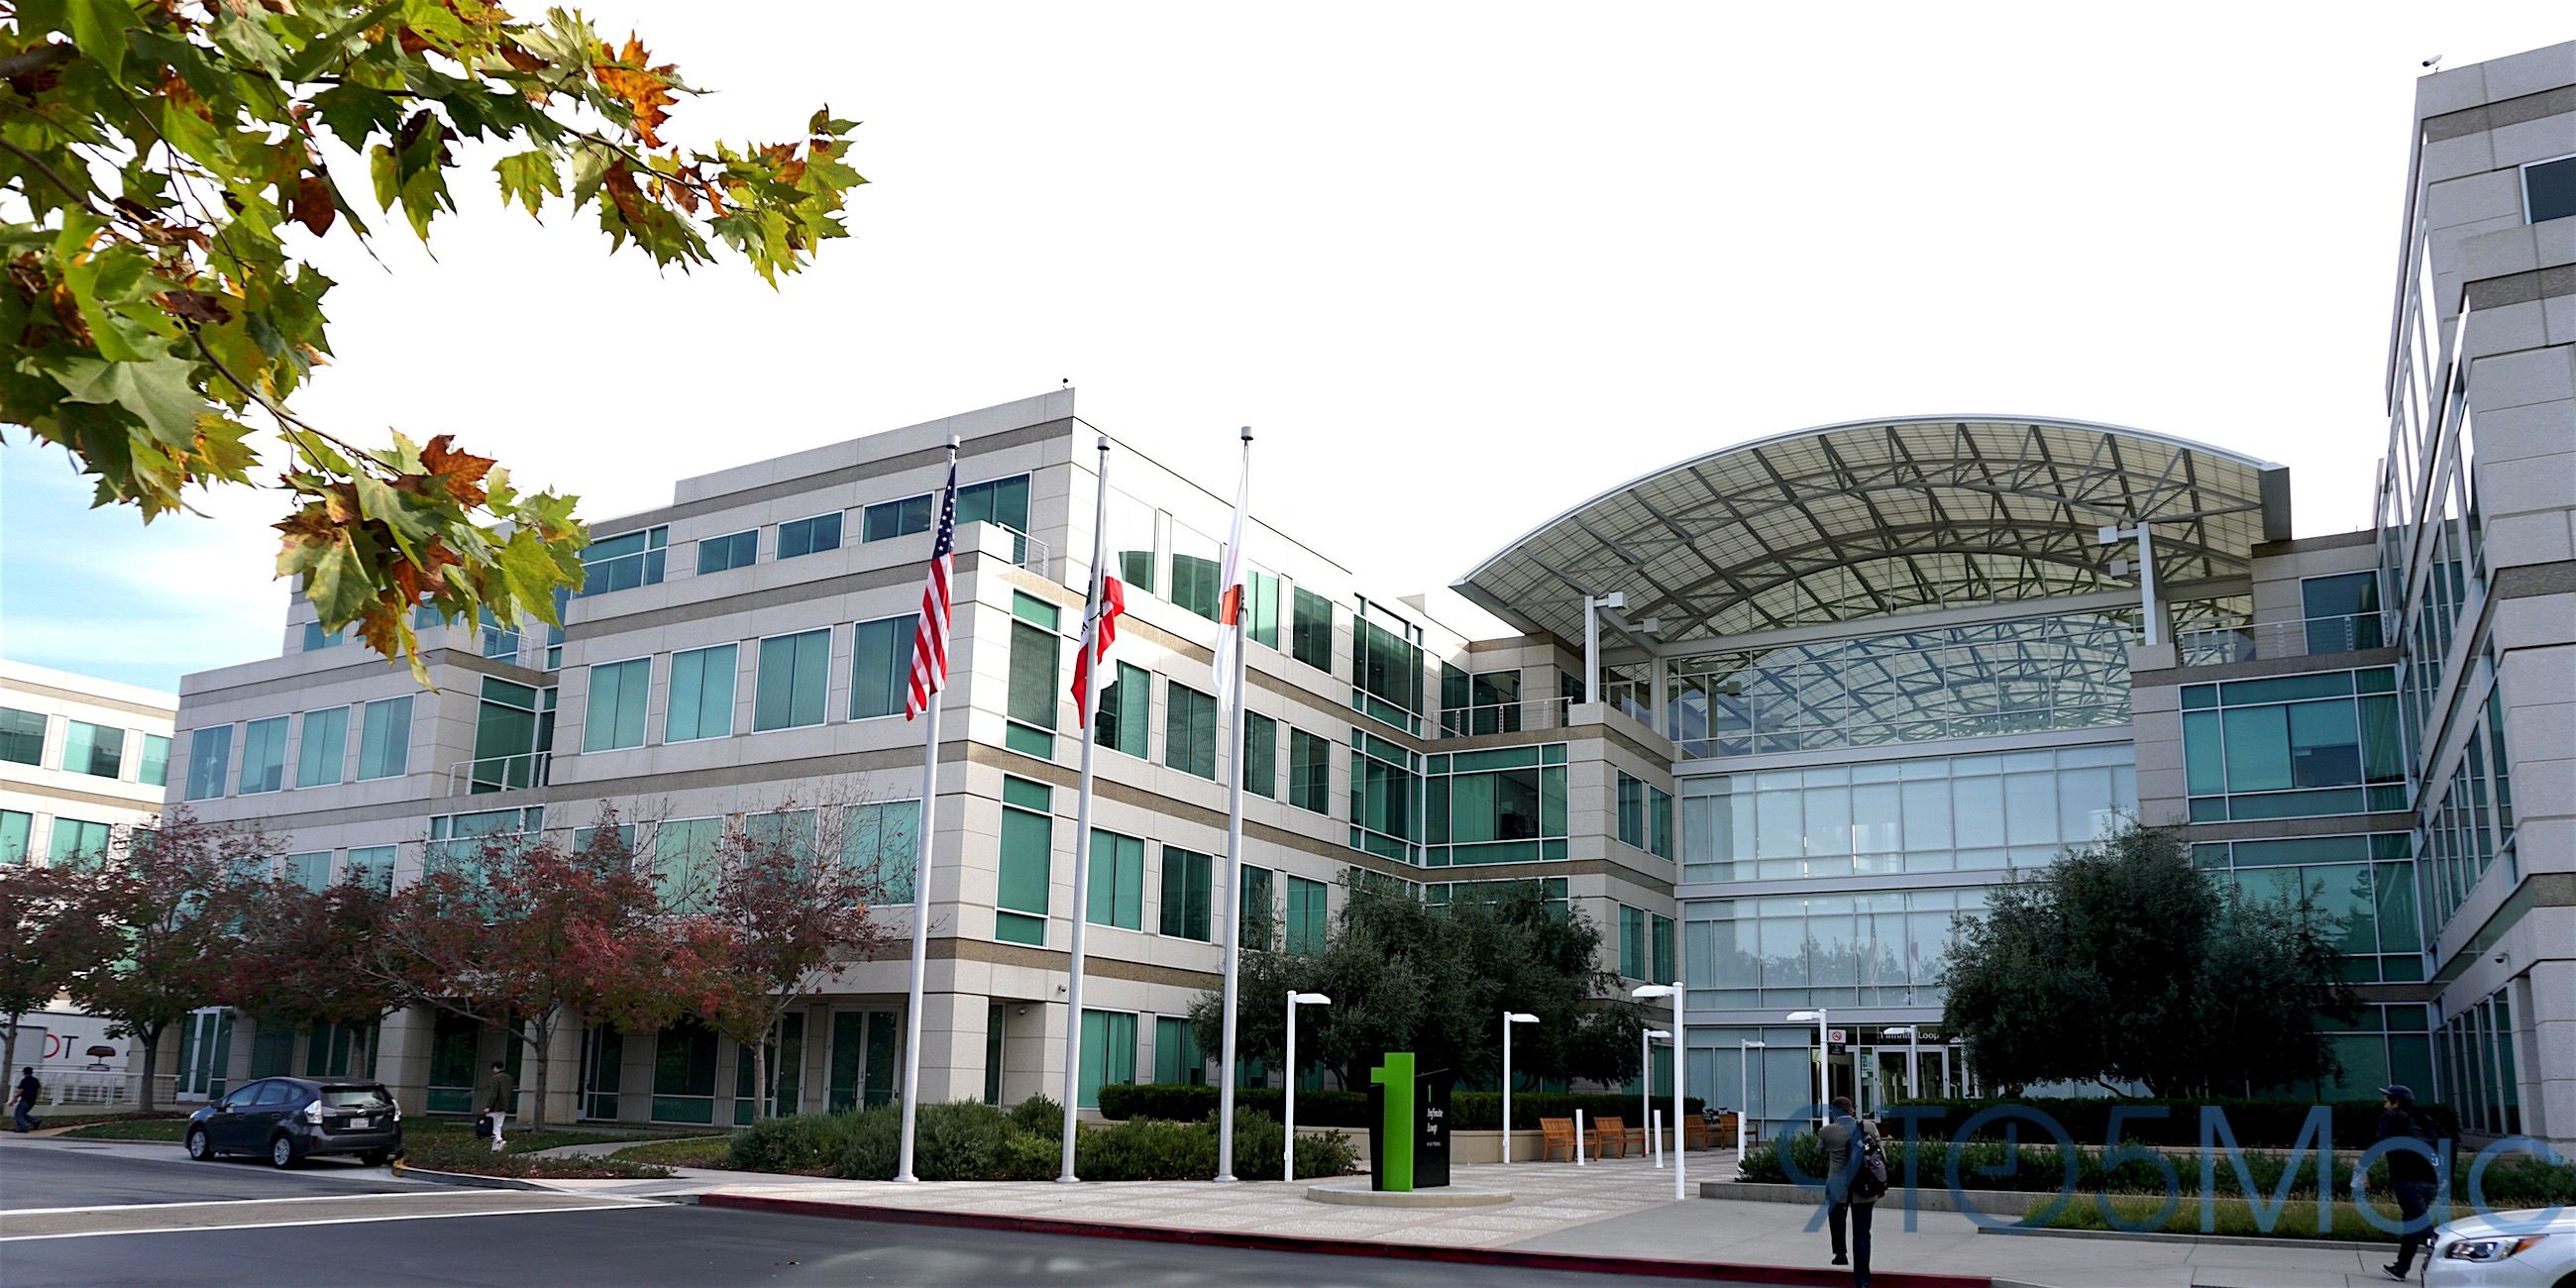 Tim Cook, Eddy Cue and others share memories of Steve Jobs, working at Infinite Loop, more